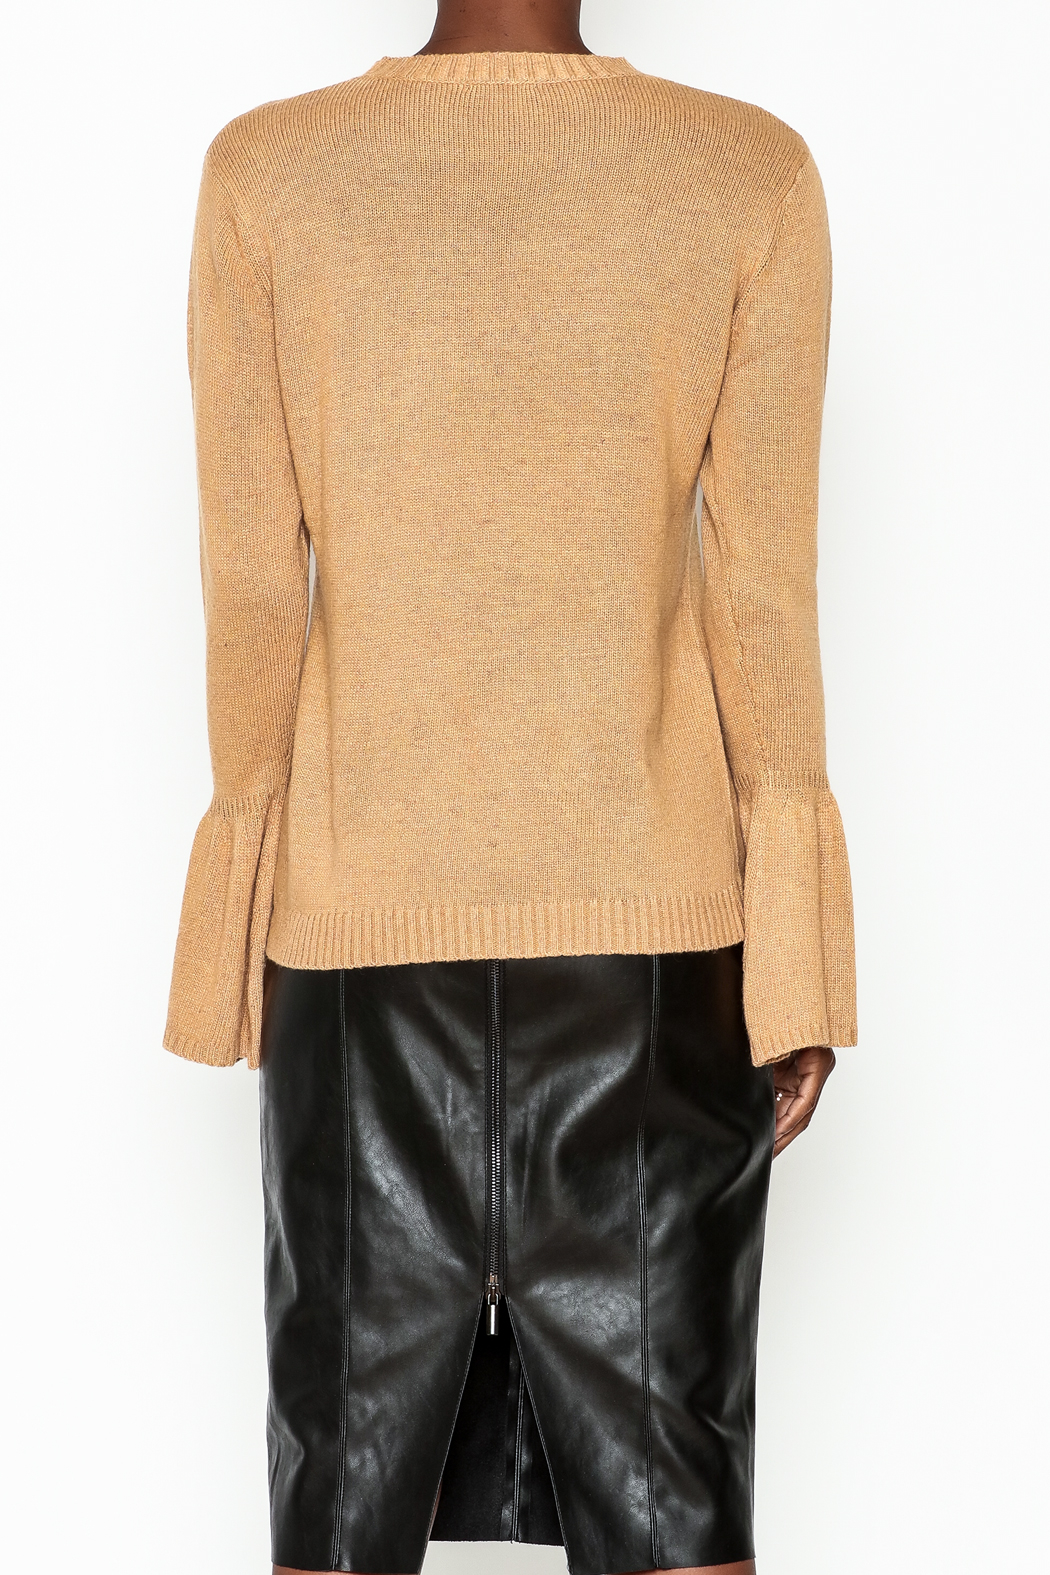 Lumiere Bell Sleeve Sweater - Back Cropped Image